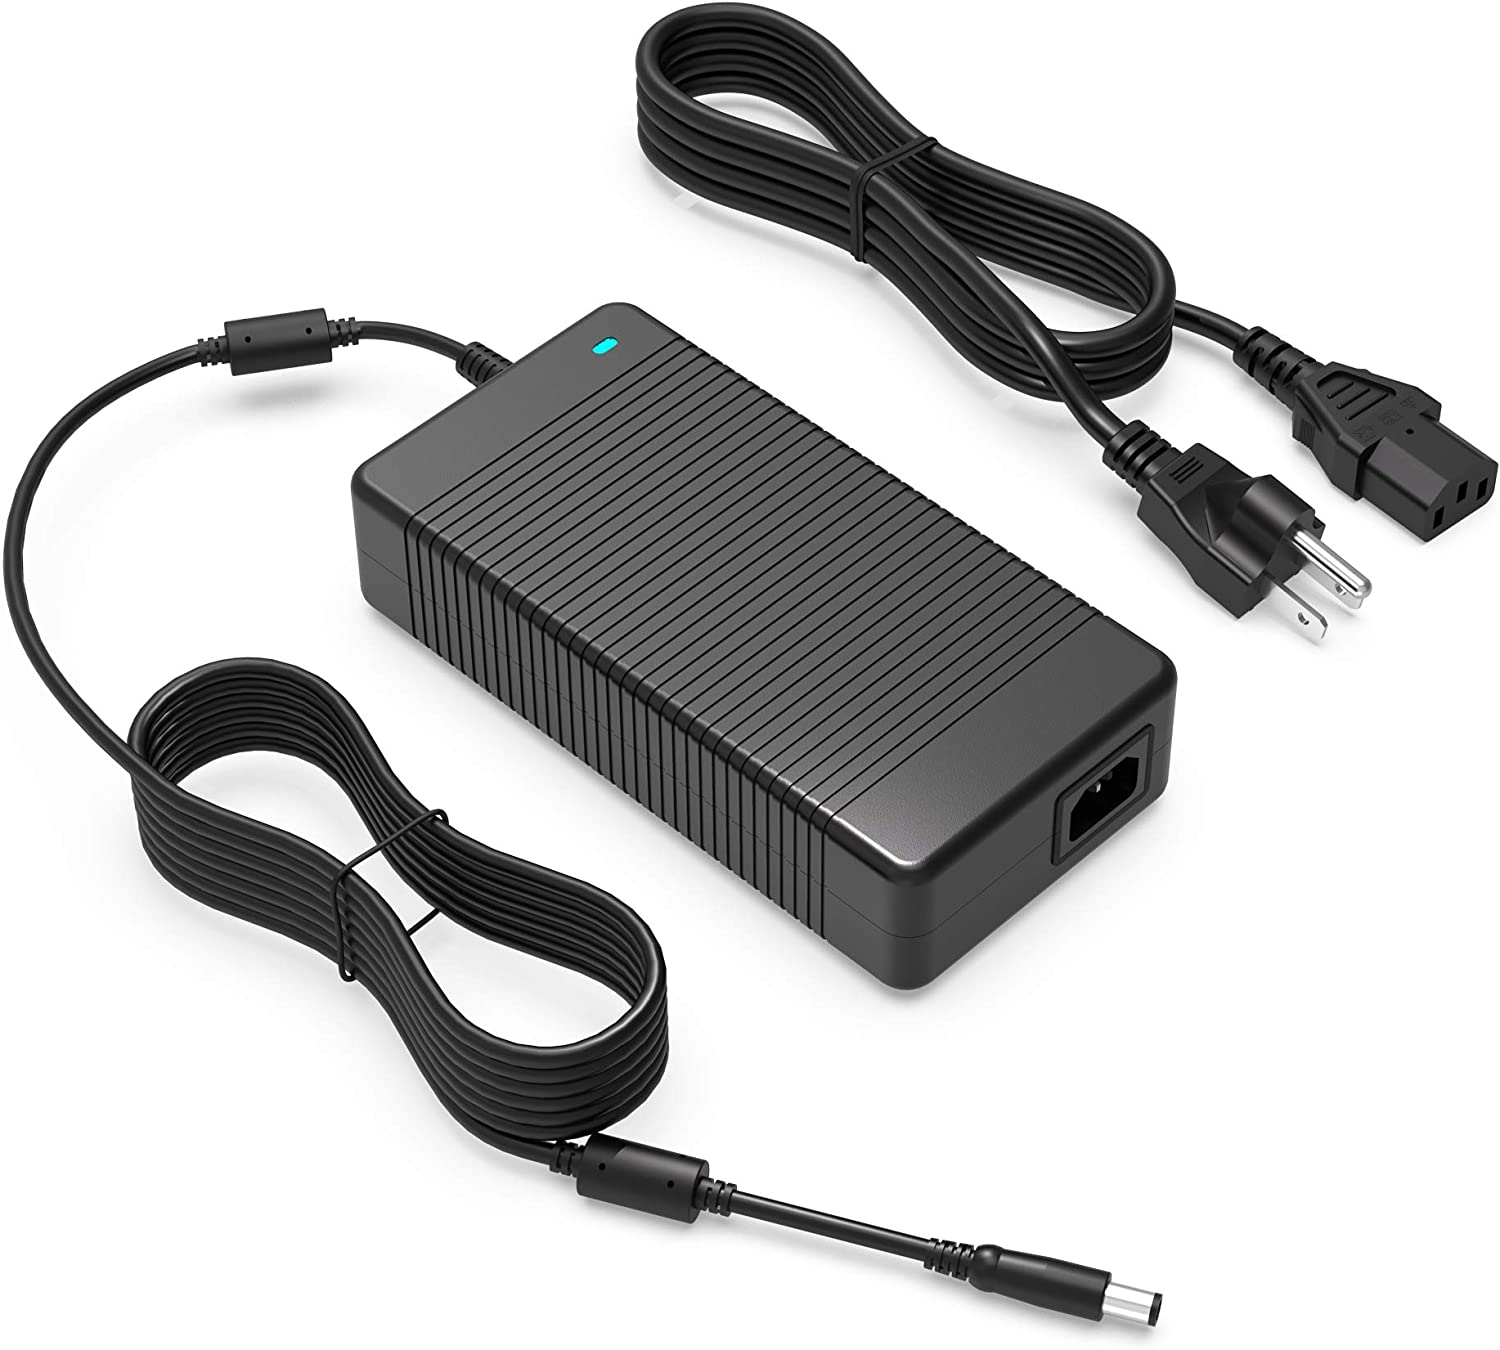 240W 180W 19.5V AC Adapter Fit for Dell Precision 7750 7740 7550 7540 7730 7720 7710 Laptop Power Supply Charger Cord